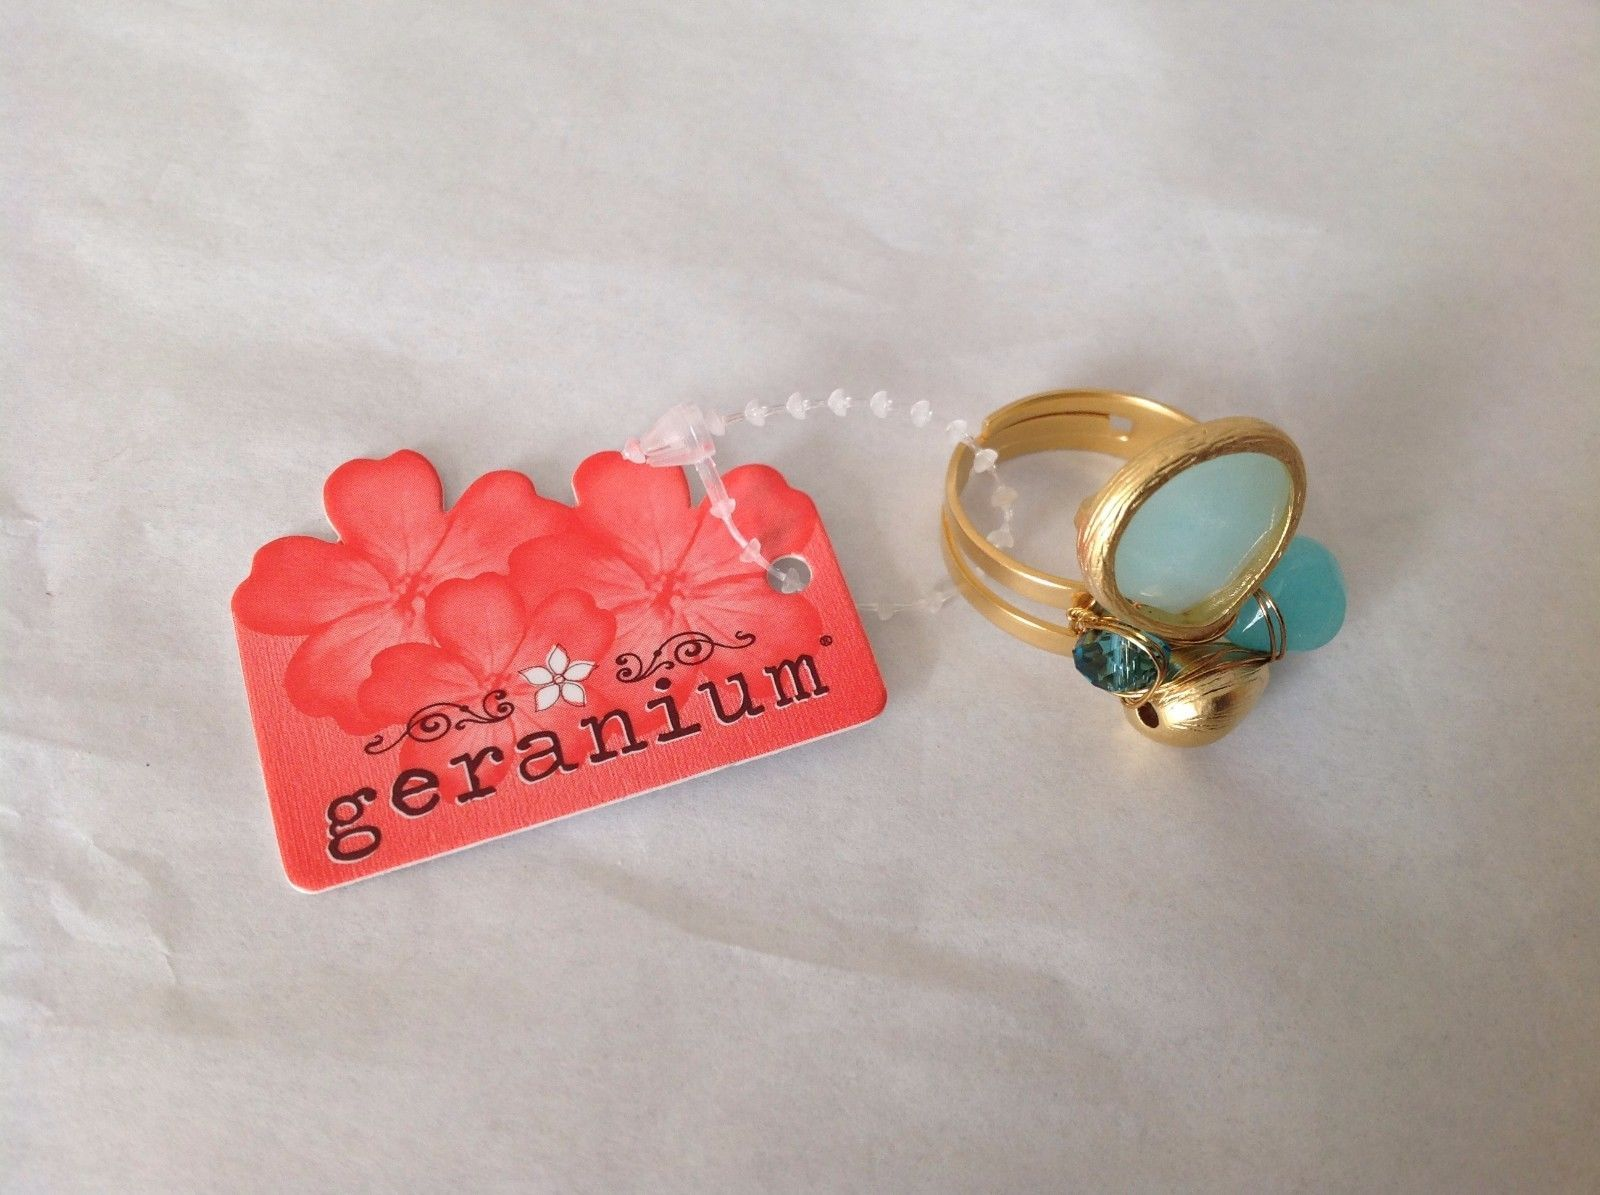 NEW Geranium Gold Toned Ring With Blue Stones NWT Adjustable size 7 +